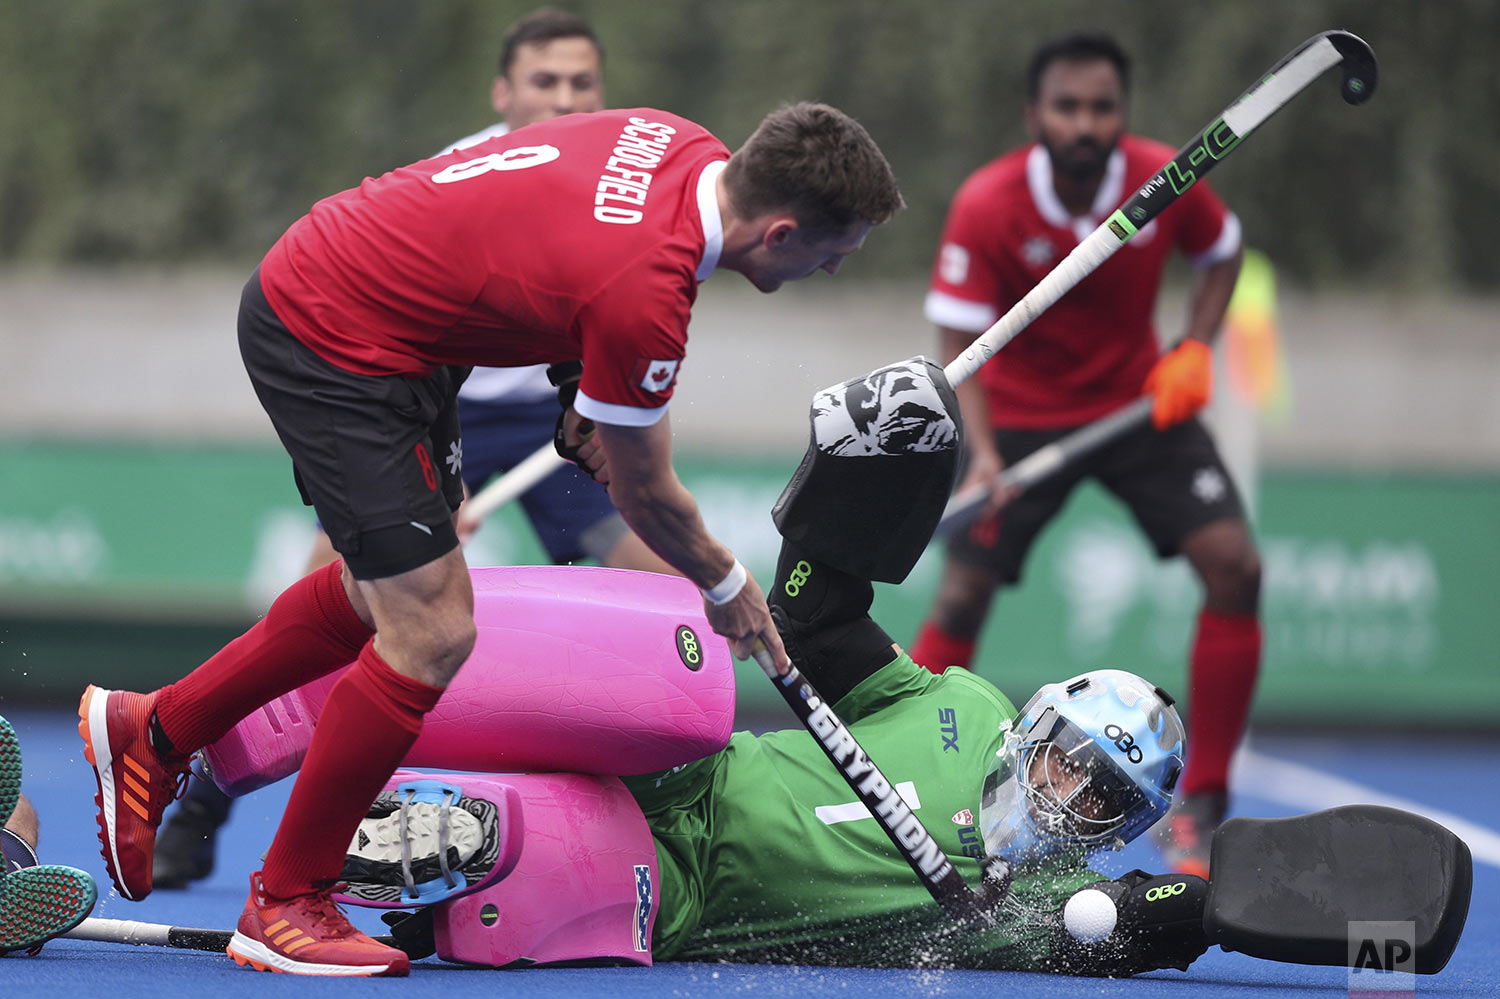 Goalkeeper Jonathan Klages of United States blocks a shot by Oliver Scholfield of Canada, left, during the field hockey men's preliminaries group B match, at the Pan American Games in Lima, Peru, Thursday, Aug. 1, 2019. (AP Photo/Martin Mejia)